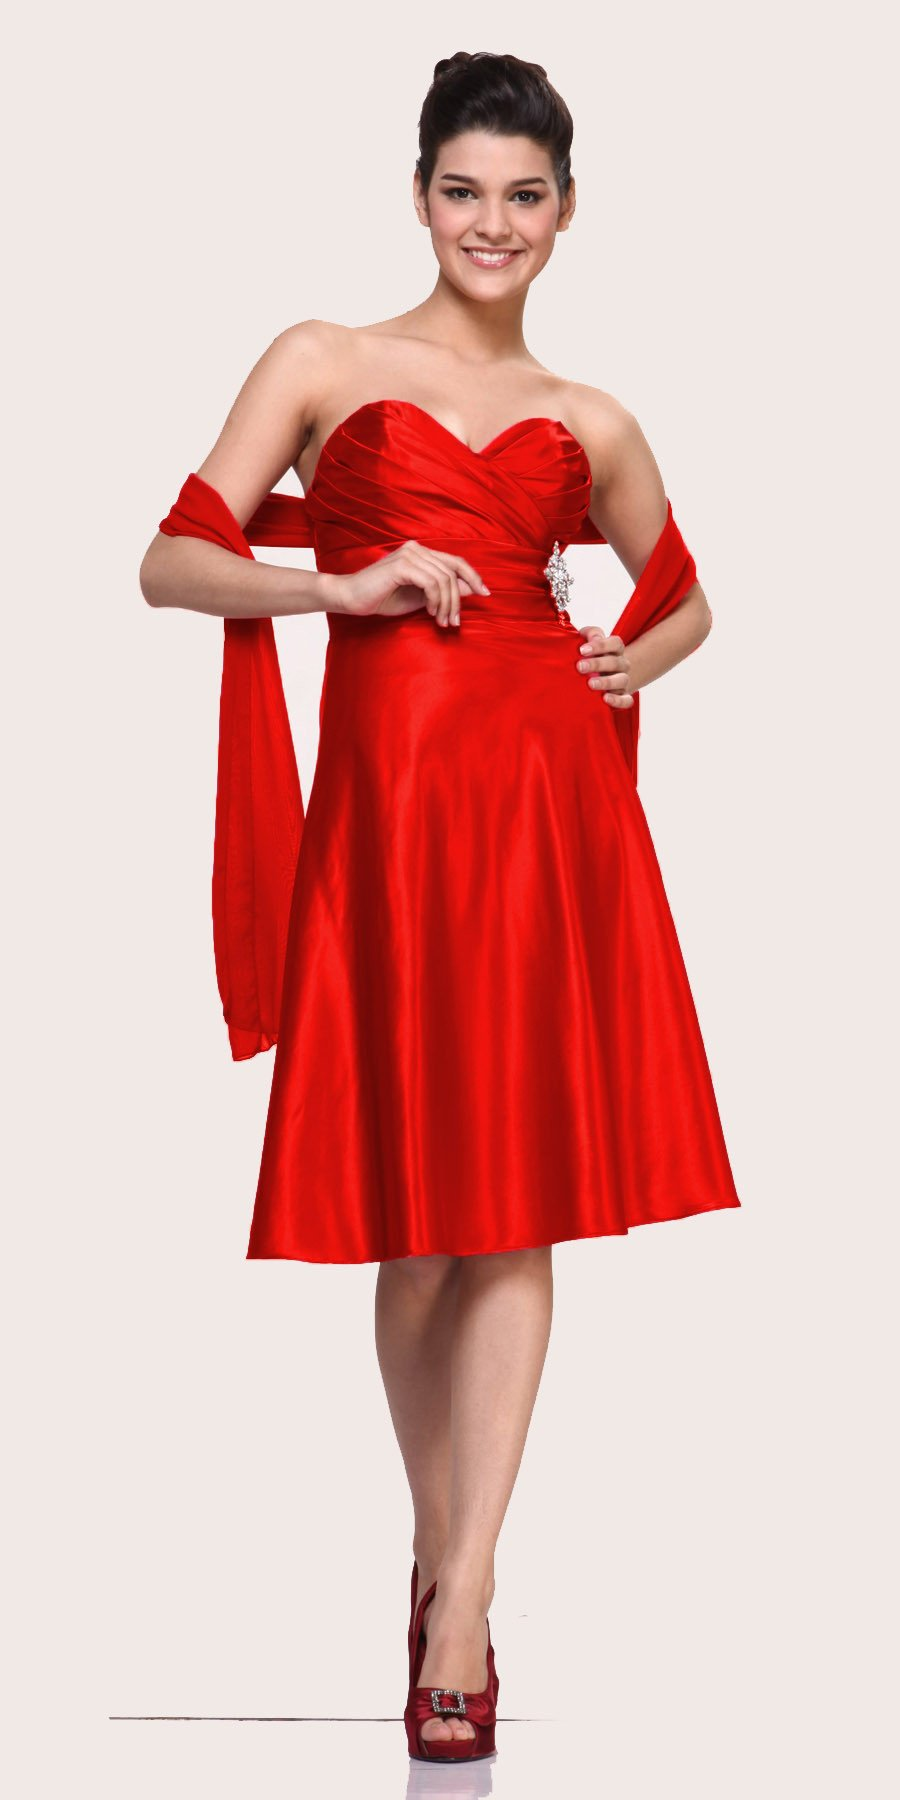 CLEARANCE - Strapless Red Dress Knee Length Sweetheart Brooch Satin ...